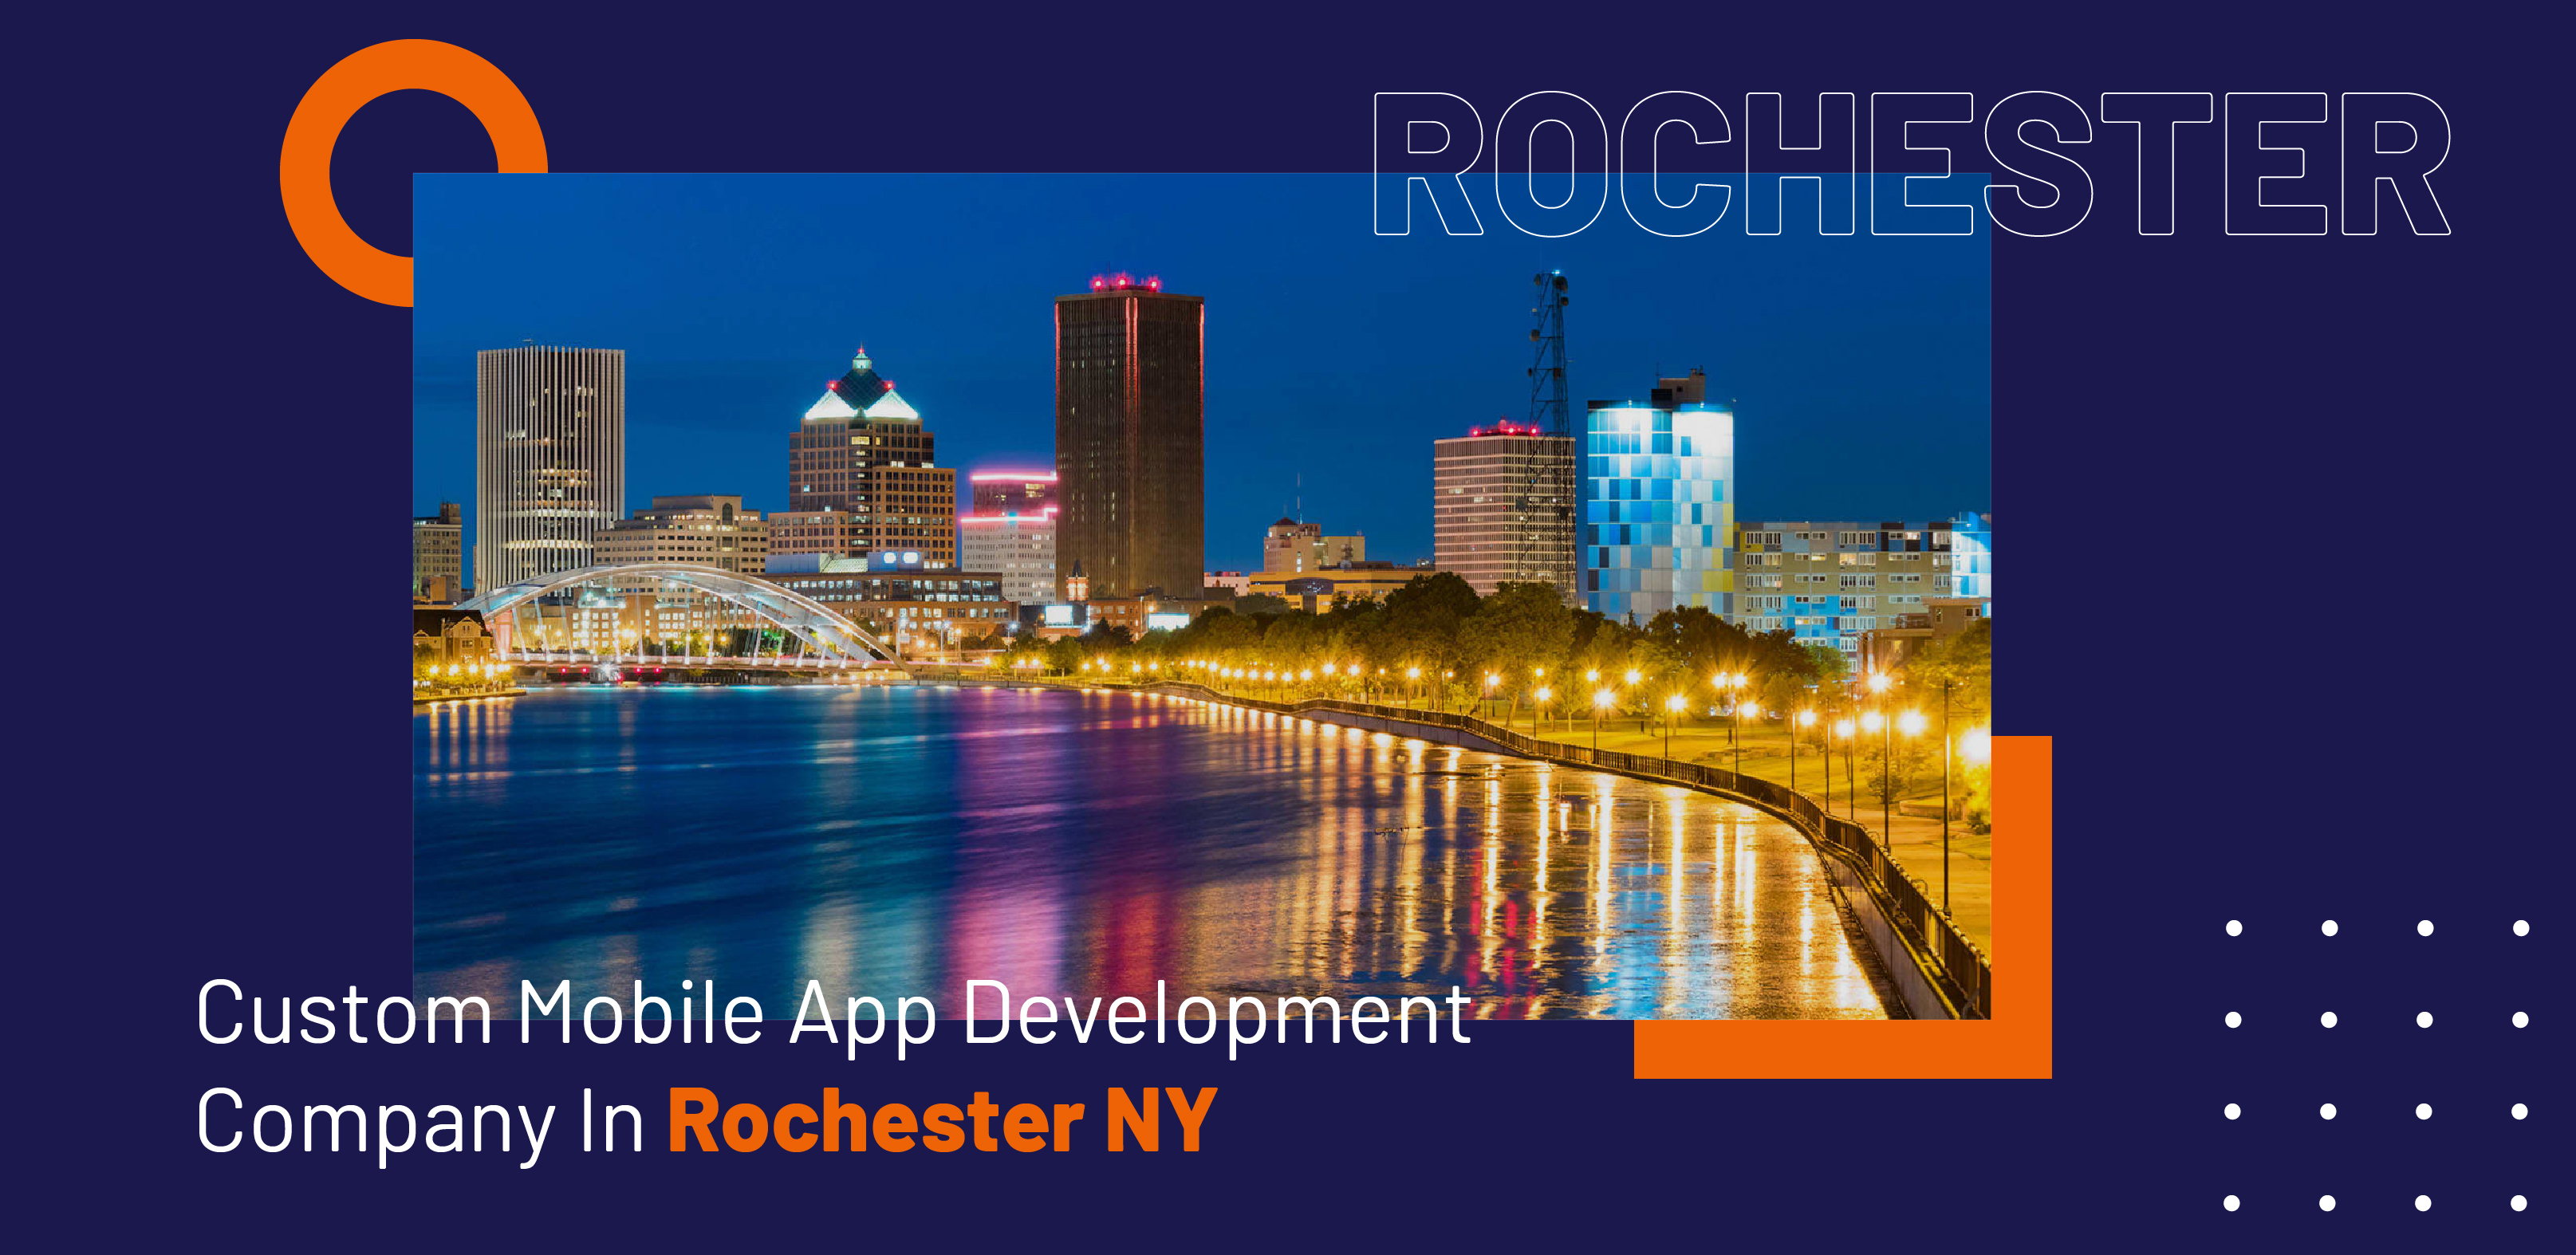 Custom Mobile App Development Company in Rochester, NY - WebClues Infotech